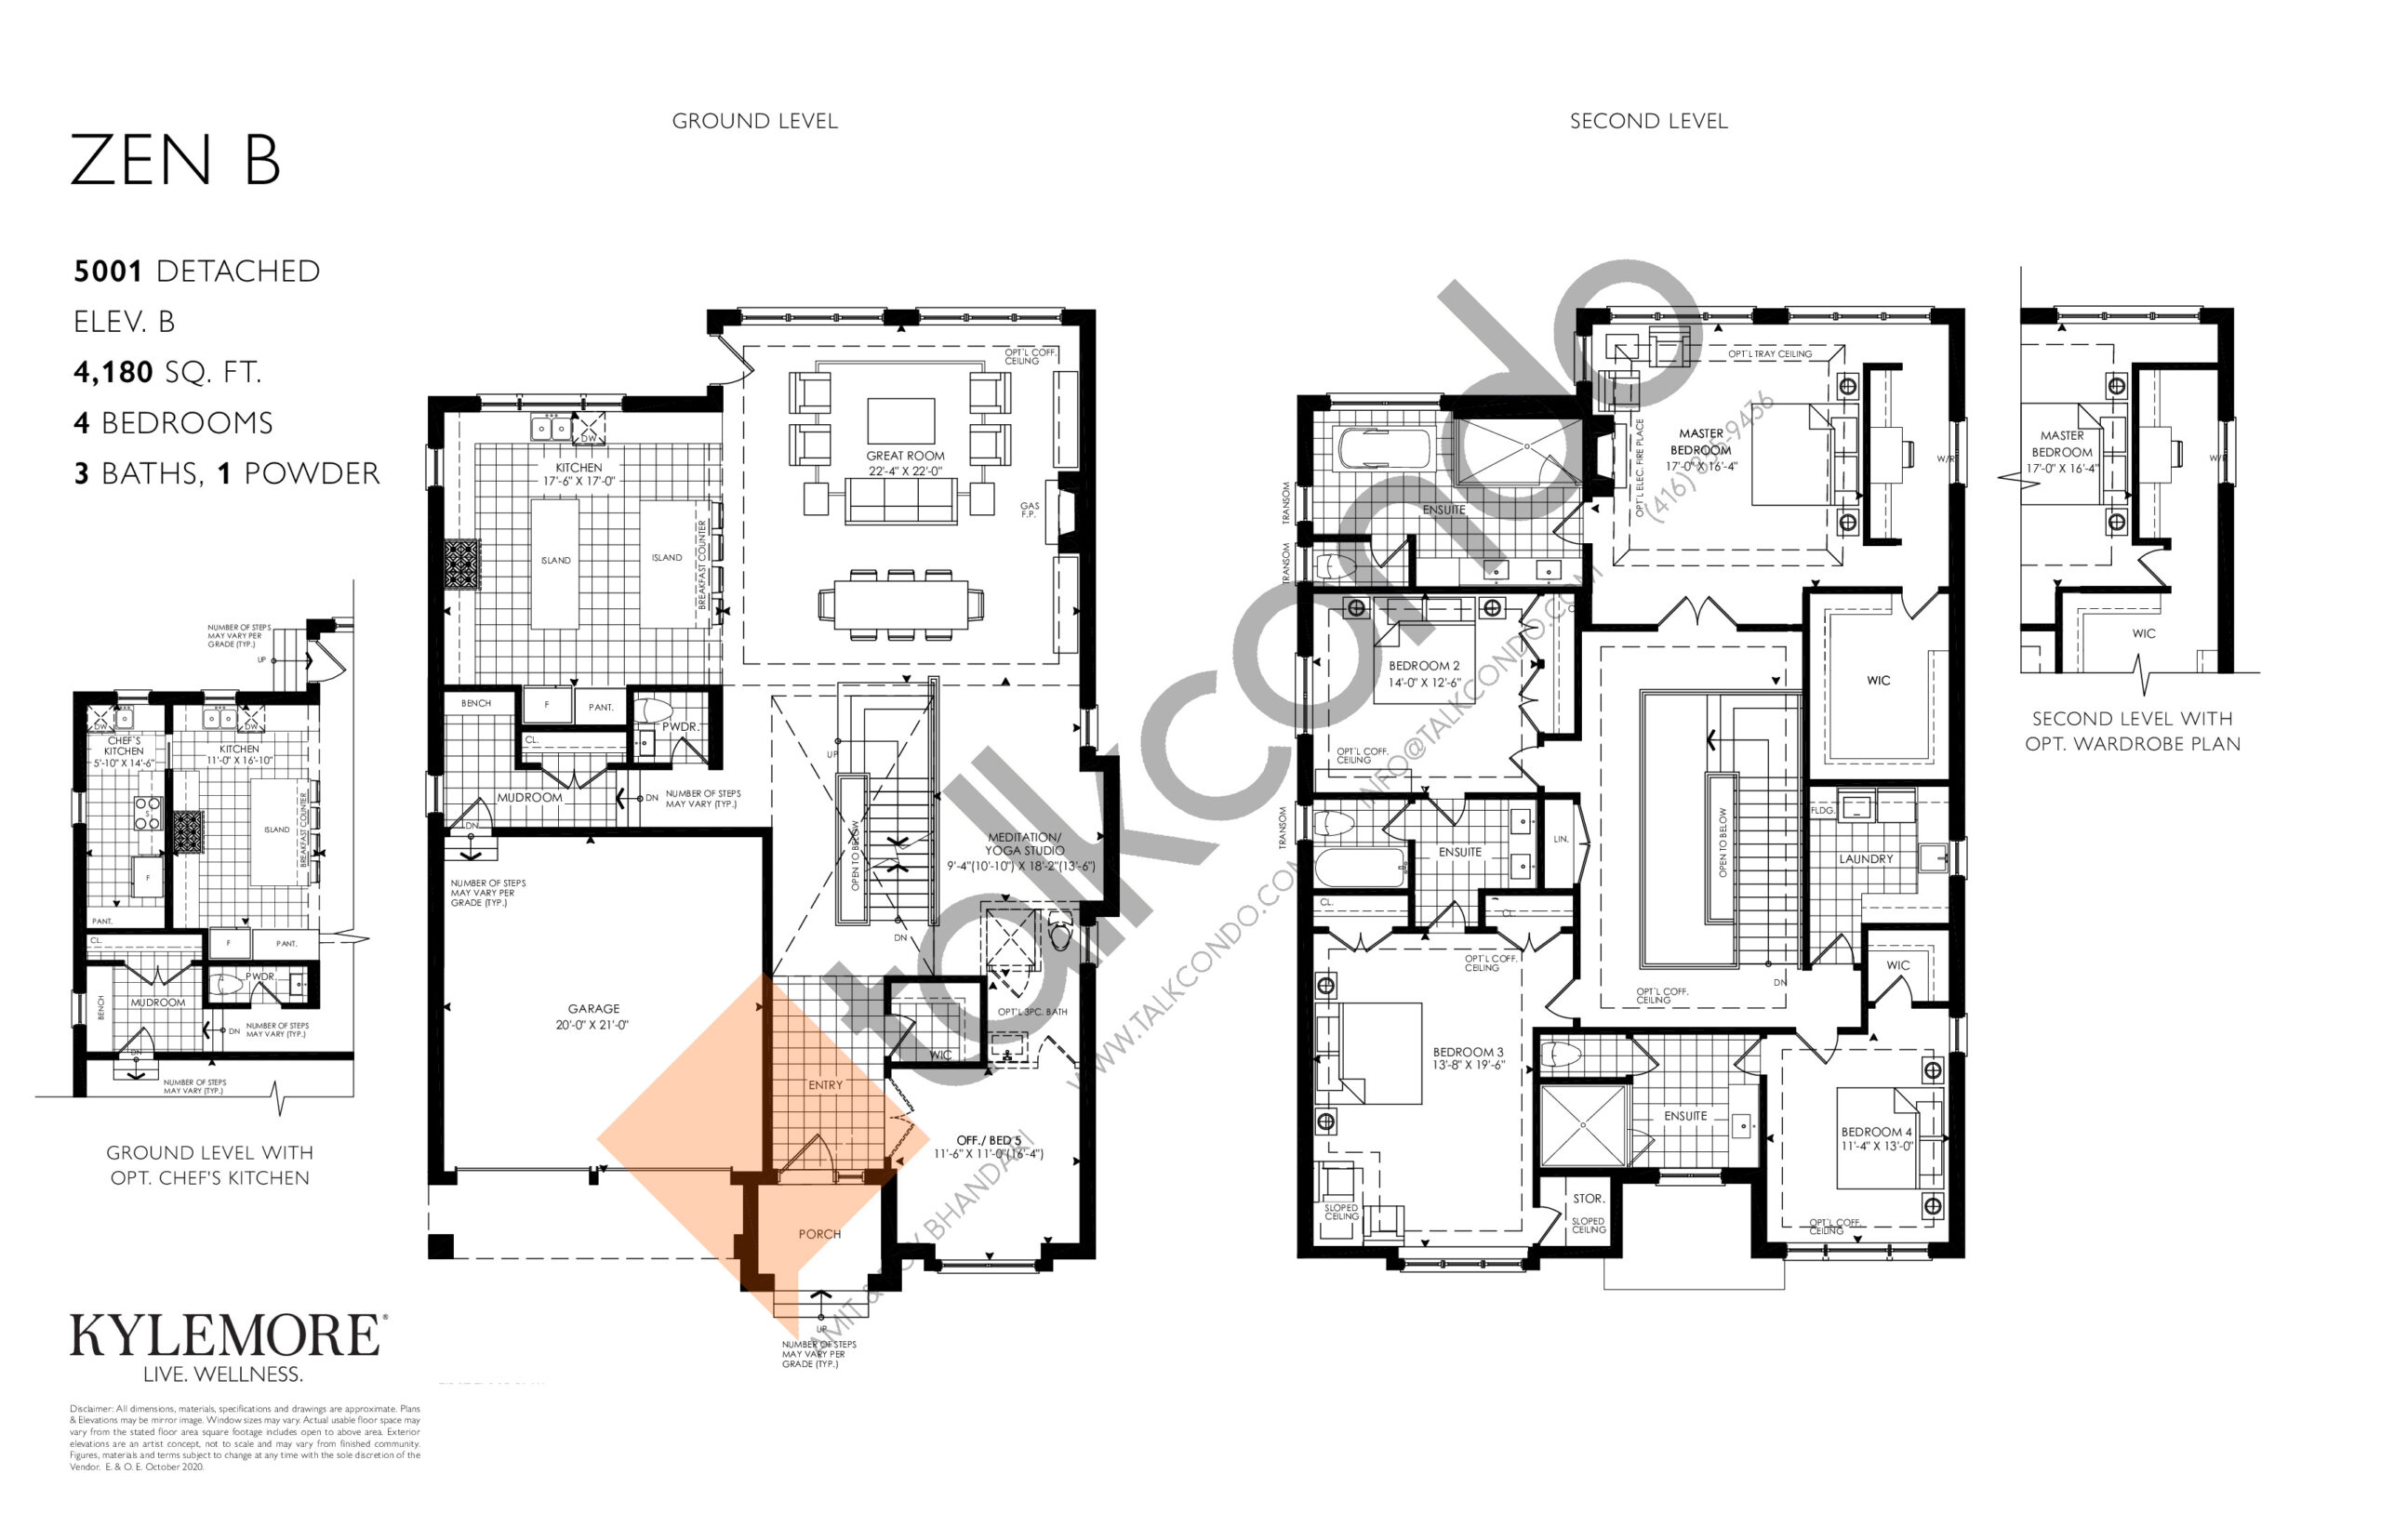 Zen B - Elev. B Floor Plan at Angus Glen South Village - 4180 sq.ft